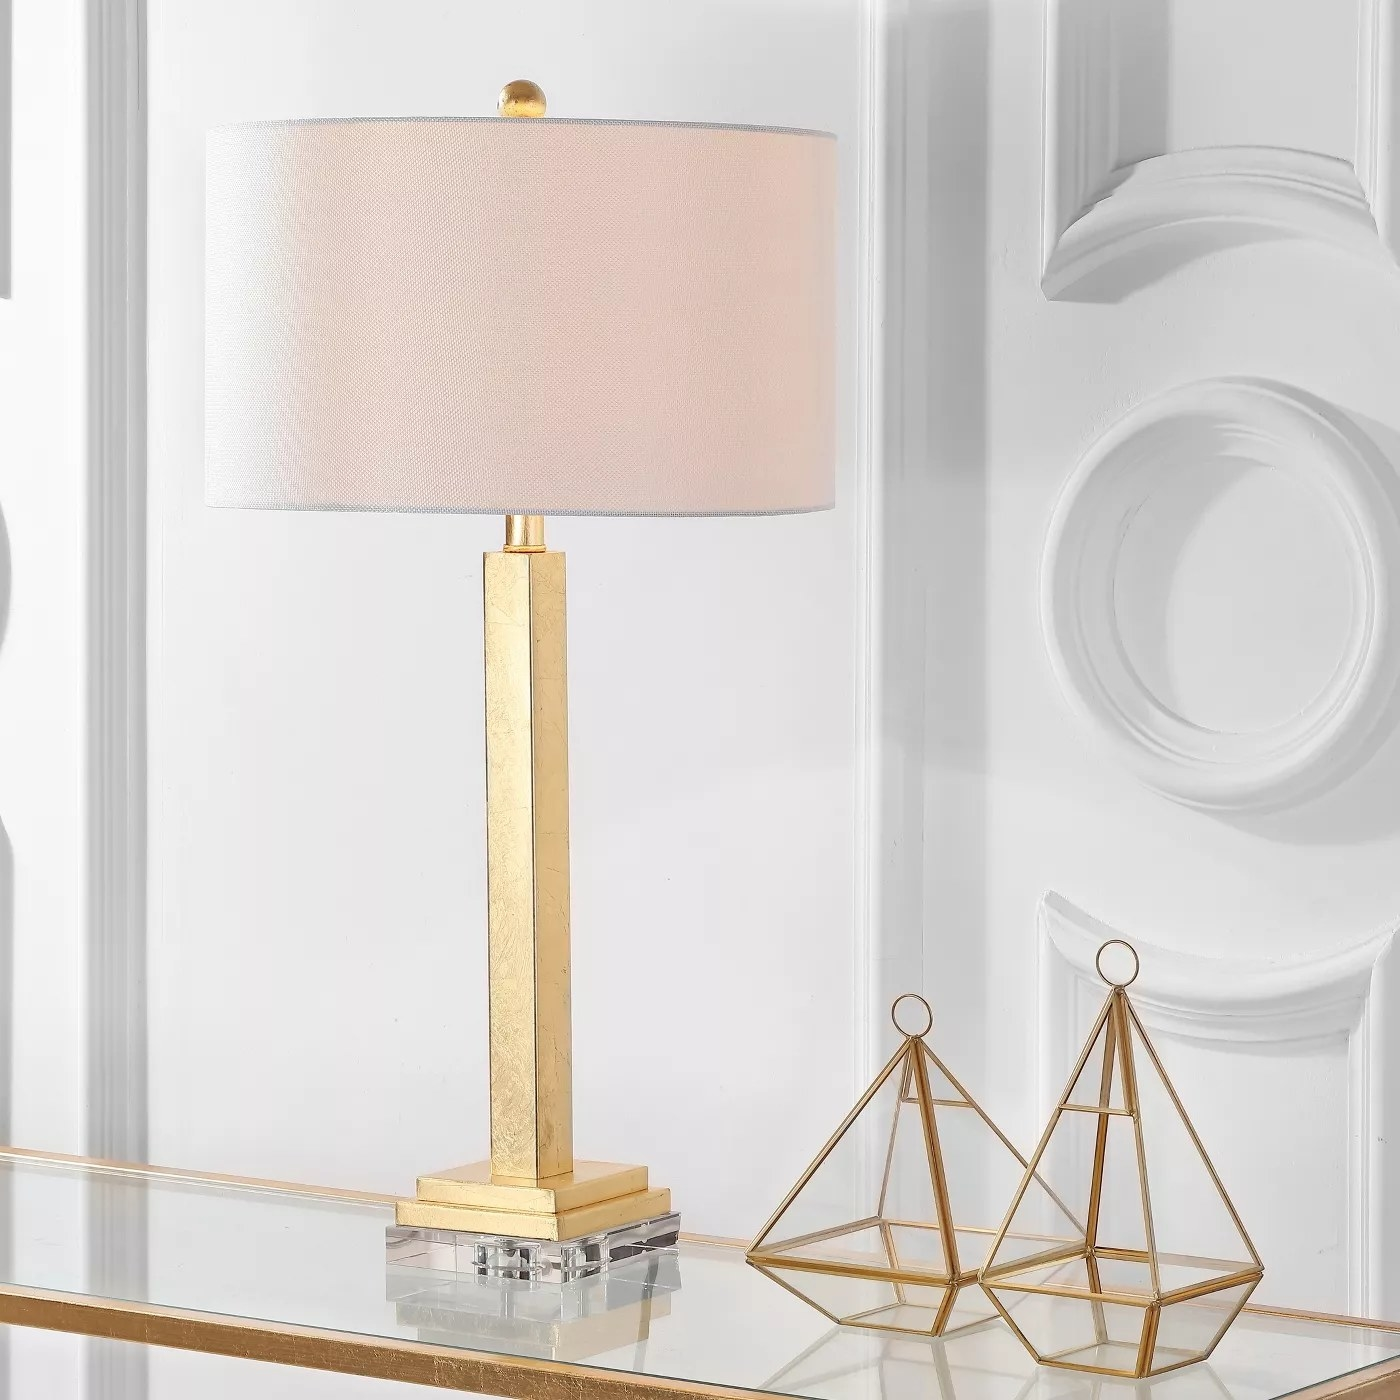 The gold lamp with a white shade and a crystal base